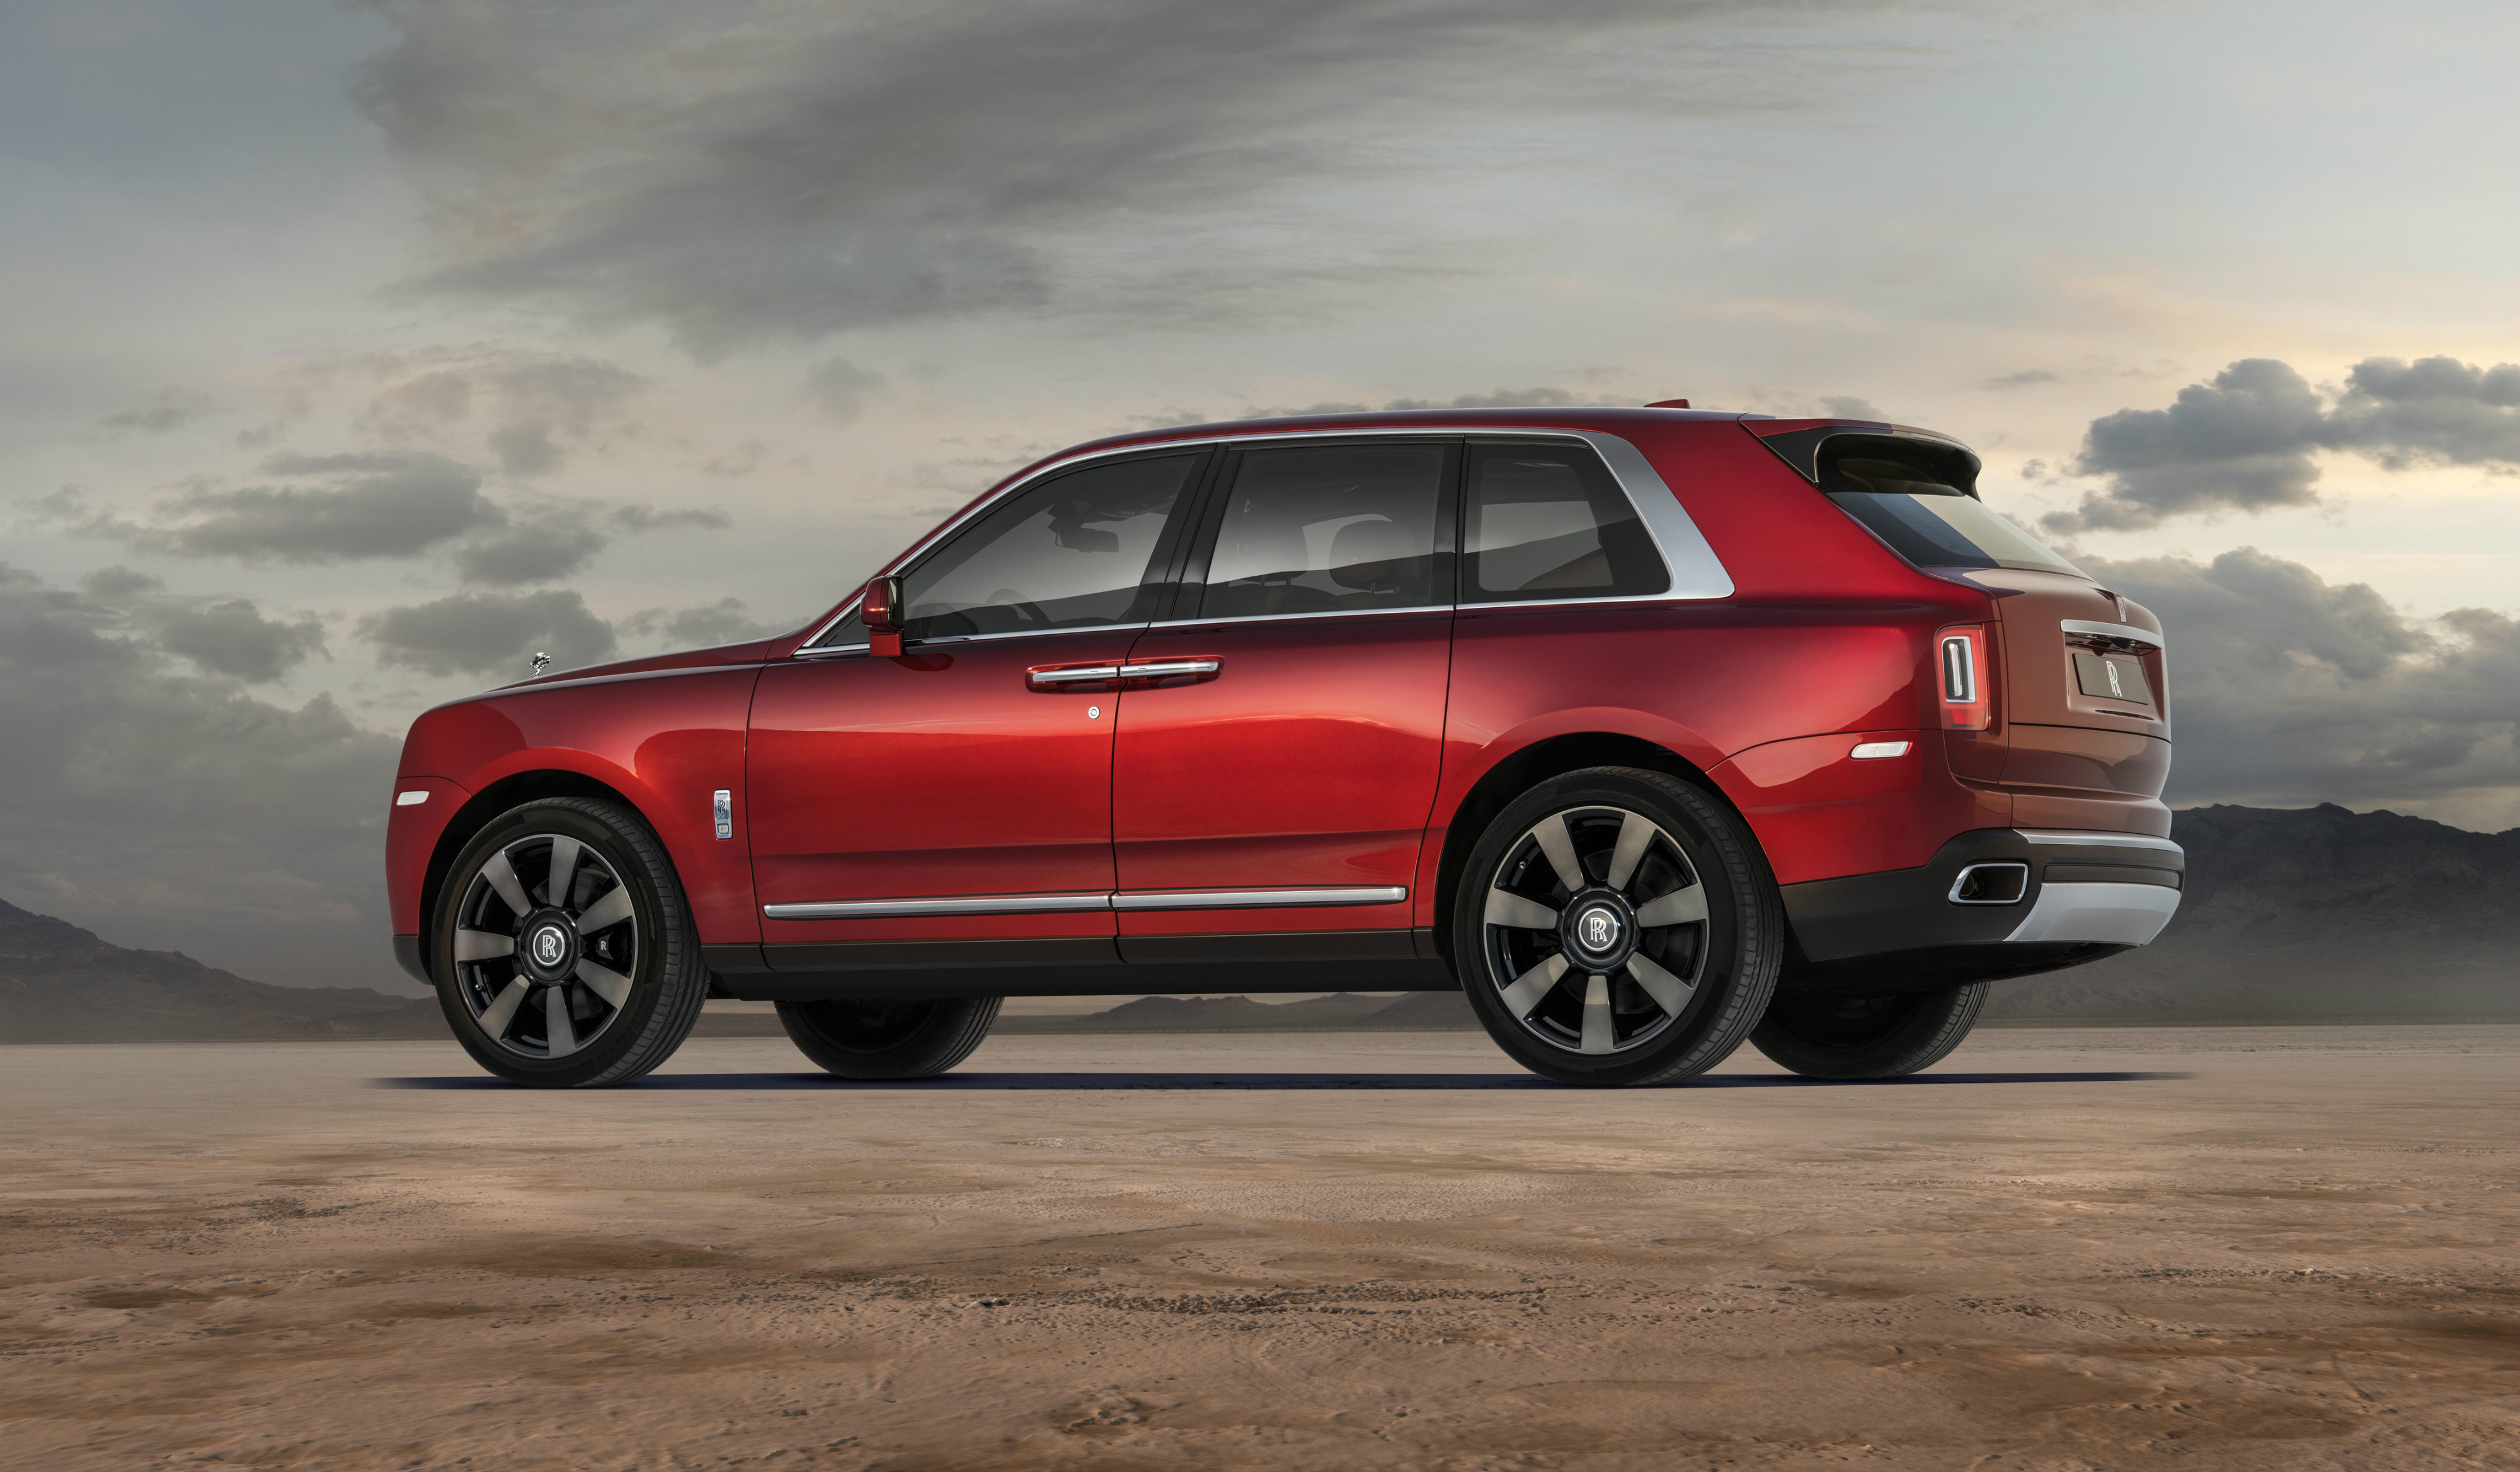 The Rolls-Royce SUV is a titanic flagship that overshadows the Bentley Bentayga and the finest Range Rovers.